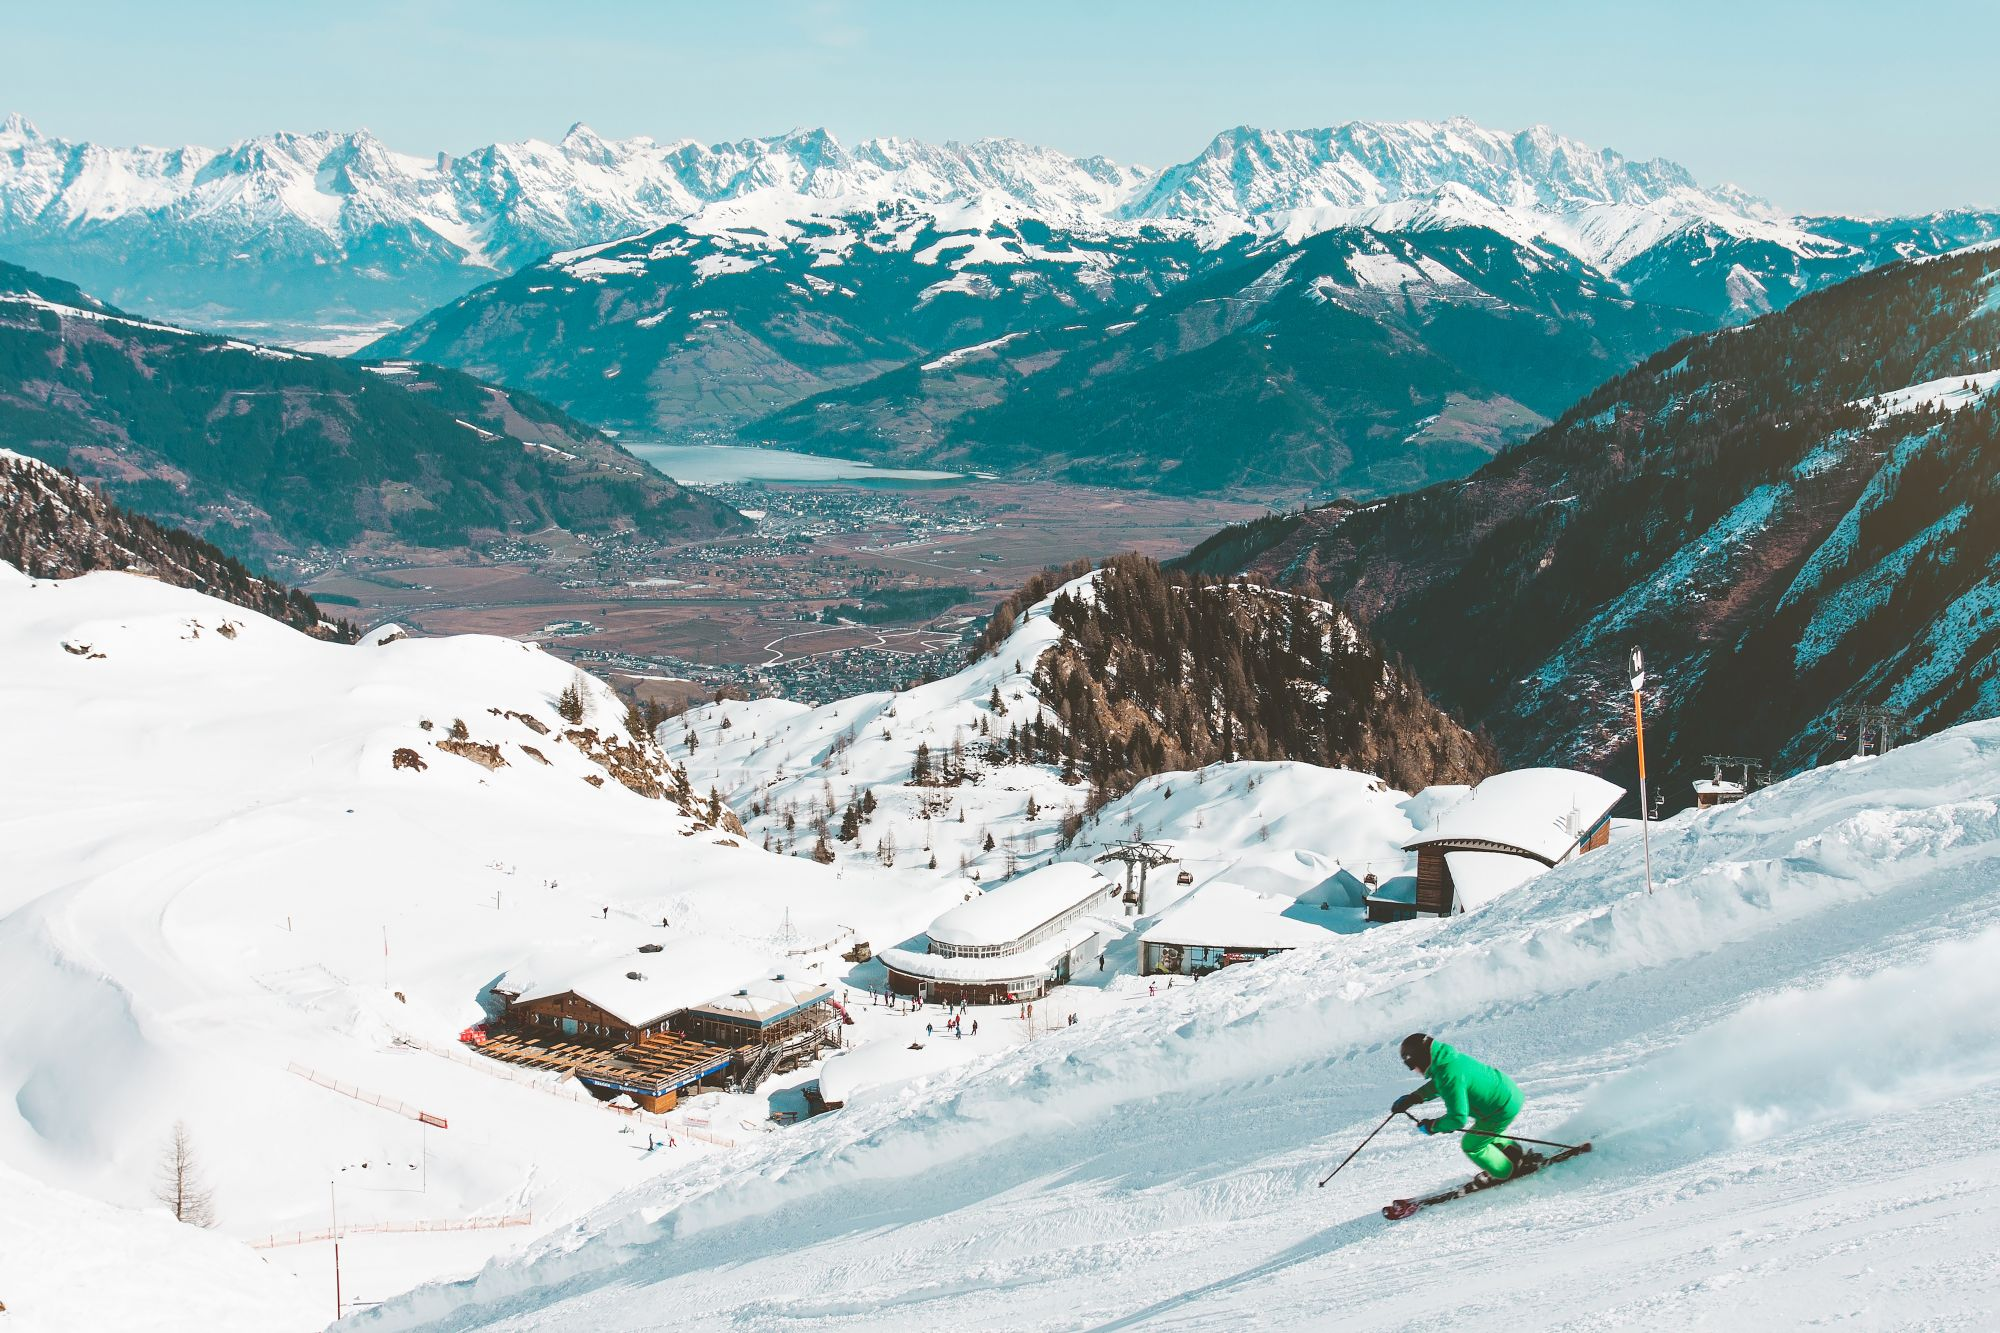 7 Underrated Ski Destinations To Hit The Slopes This Winter